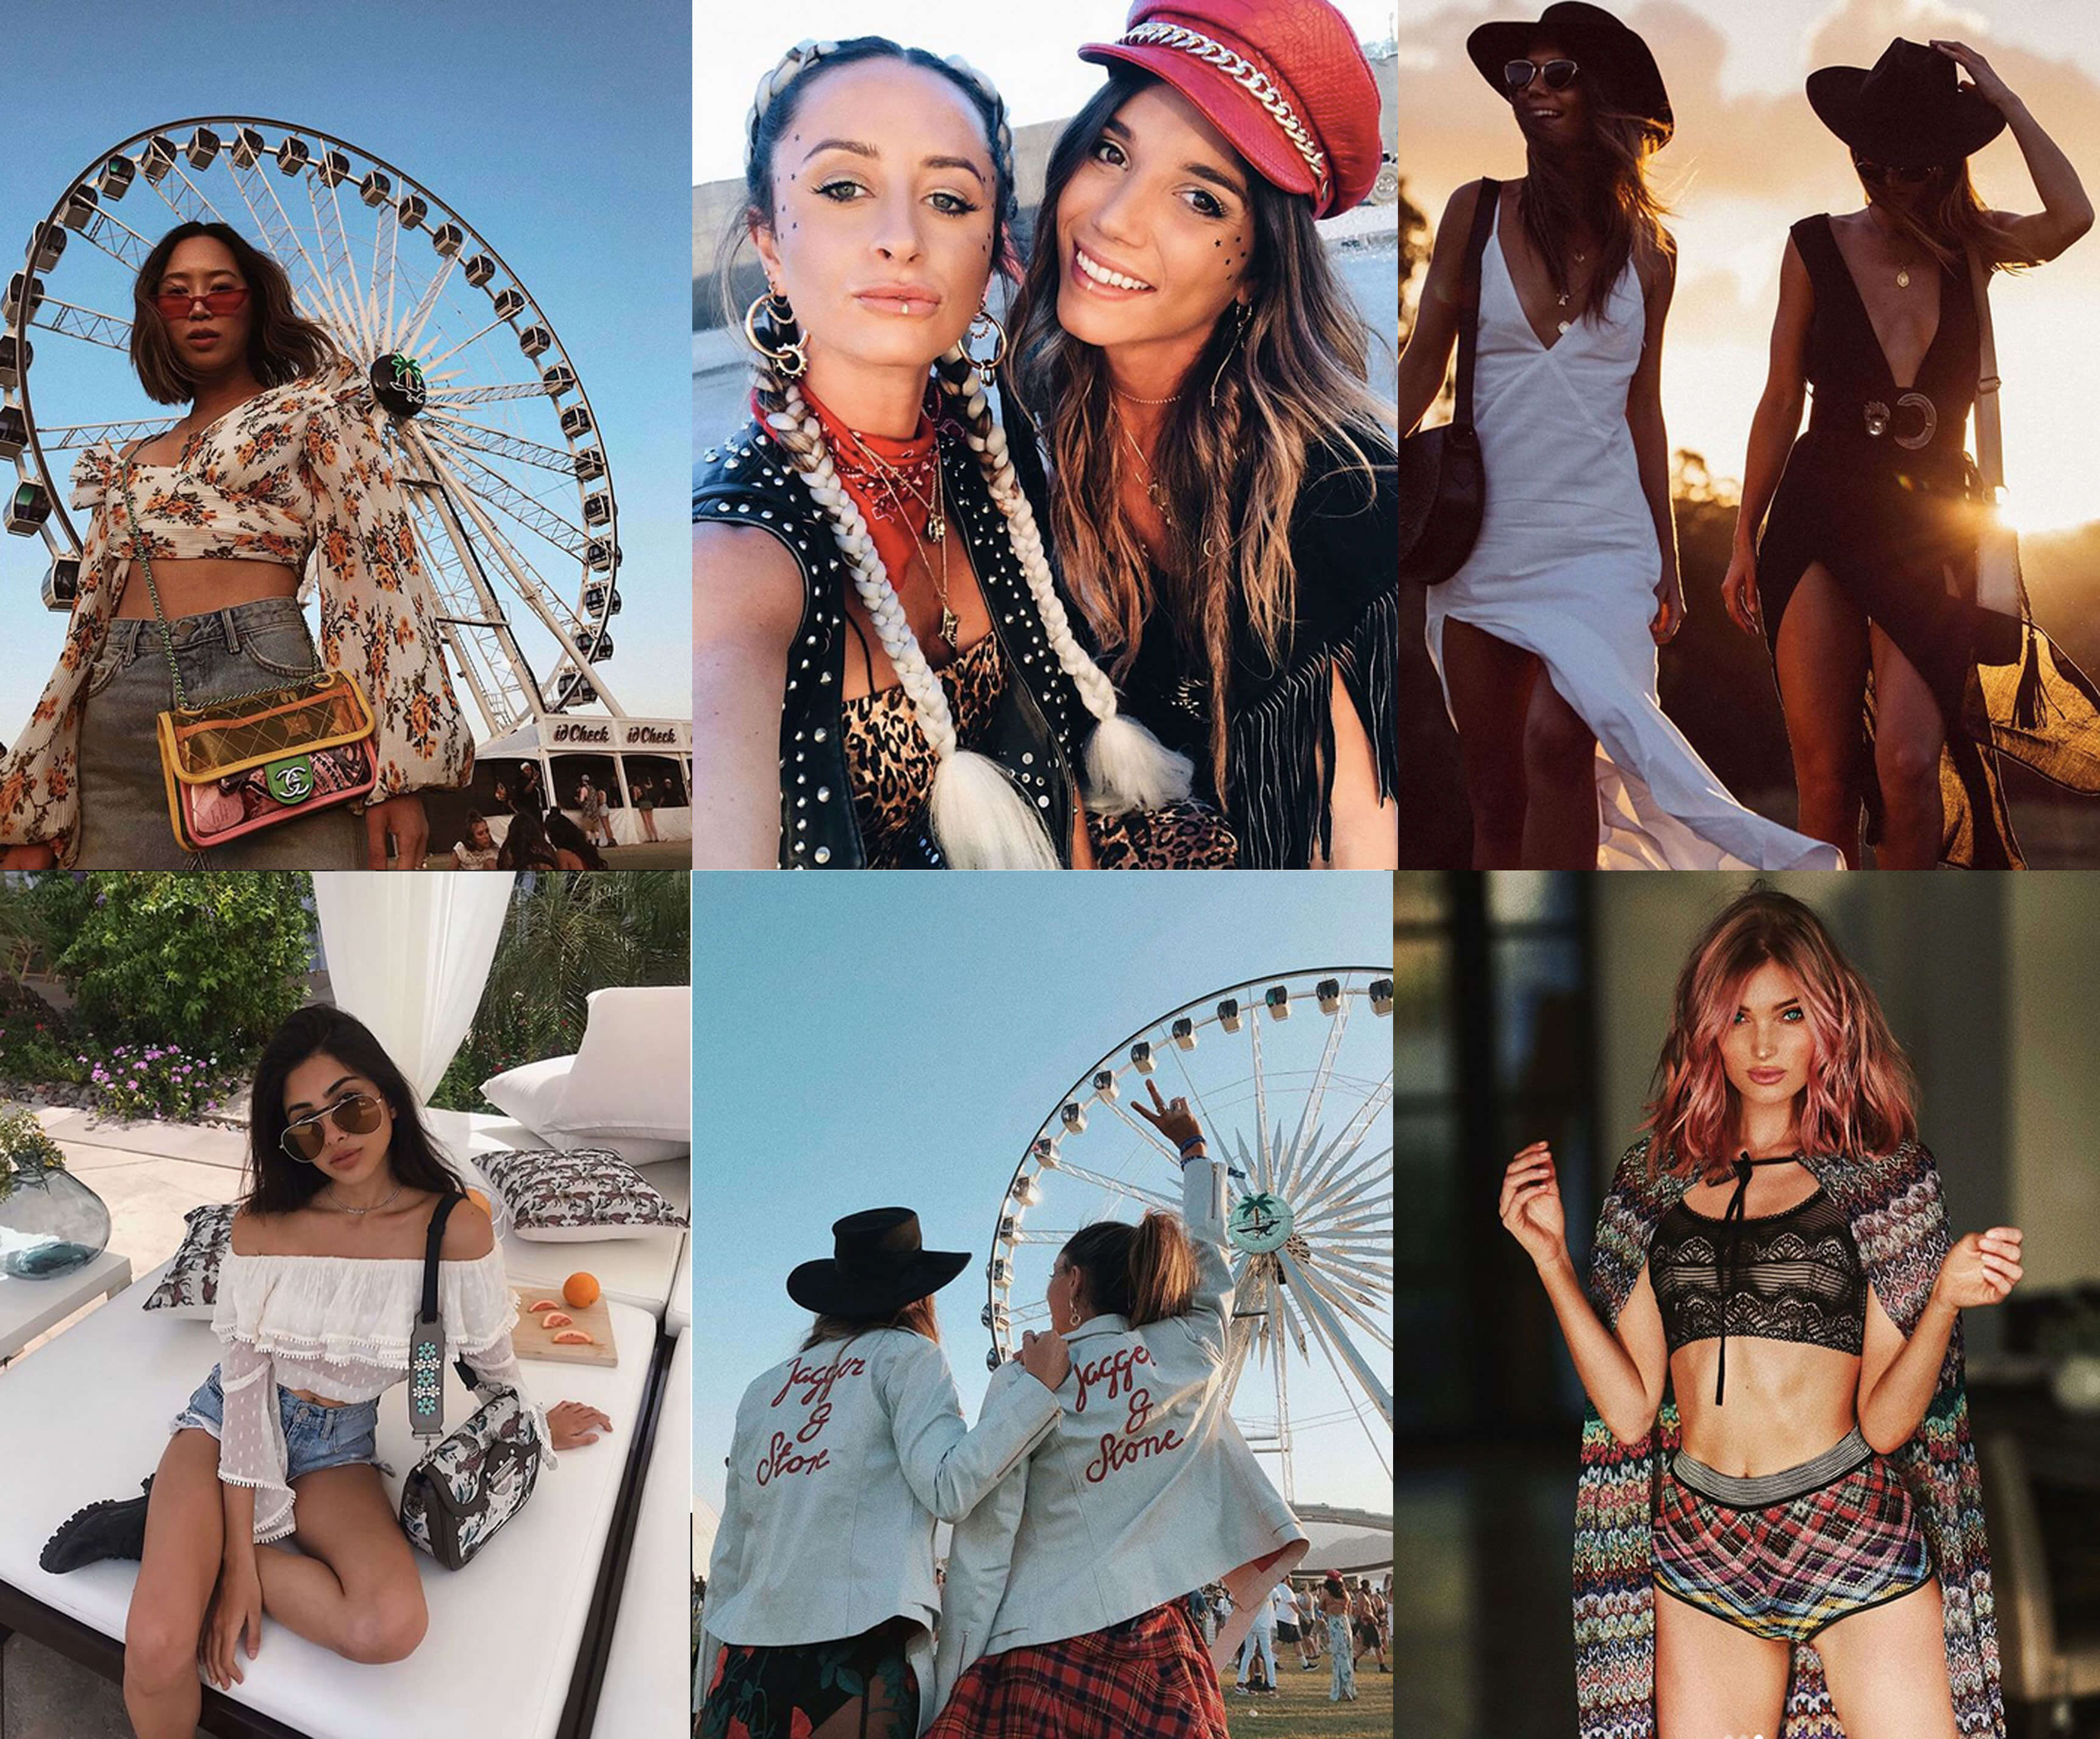 How to dress on Coachella? 2018 looks from festival